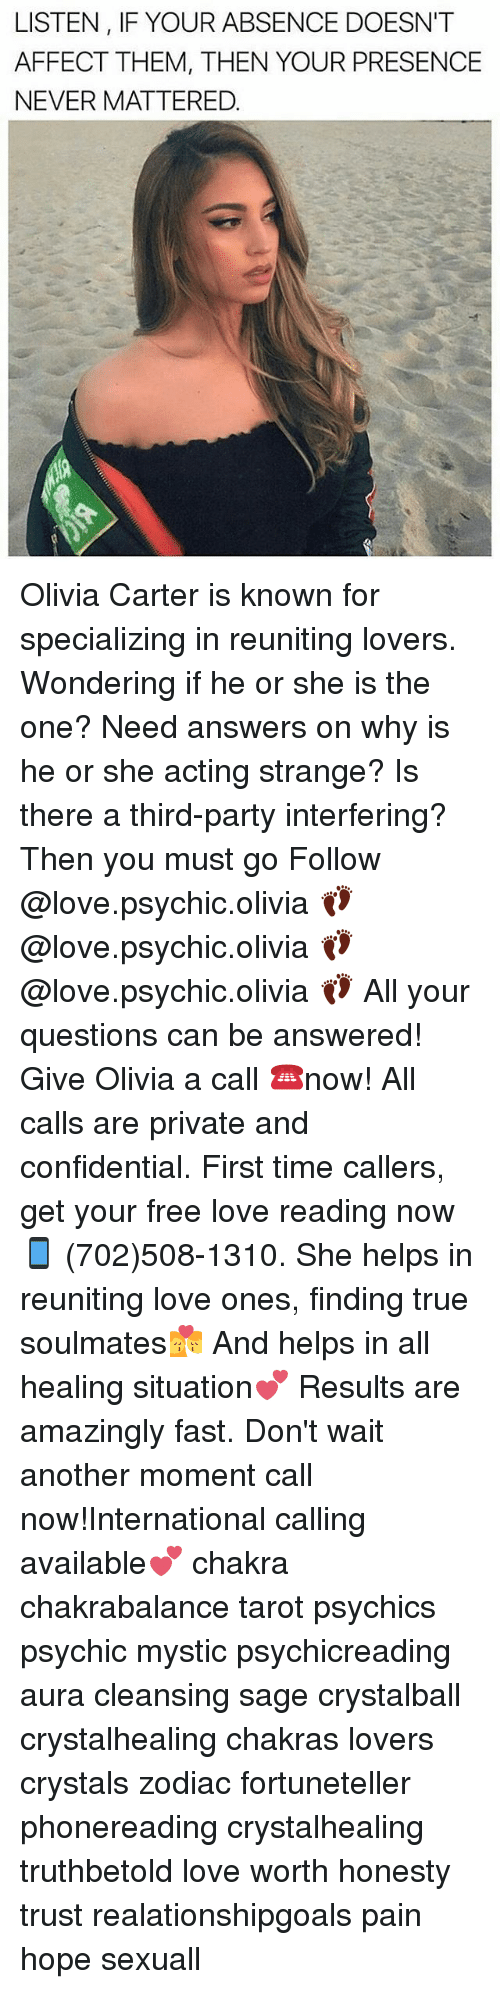 Saged: LISTEN, IF YOUR ABSENCE DOESN'T  AFFECT THEM, THEN YOUR PRESENCE  NEVER MATTERED. Olivia Carter is known for specializing in reuniting lovers. Wondering if he or she is the one? Need answers on why is he or she acting strange? Is there a third-party interfering? Then you must go Follow @love.psychic.olivia 👣 @love.psychic.olivia 👣 @love.psychic.olivia 👣 All your questions can be answered! Give Olivia a call ☎️now! All calls are private and confidential. First time callers, get your free love reading now 📱 (702)508-1310. She helps in reuniting love ones, finding true soulmates💏 And helps in all healing situation💕 Results are amazingly fast. Don't wait another moment call now!International calling available💕 chakra chakrabalance tarot psychics psychic mystic psychicreading aura cleansing sage crystalball crystalhealing chakras lovers crystals zodiac fortuneteller phonereading crystalhealing truthbetold love worth honesty trust realationshipgoals pain hope sexuall